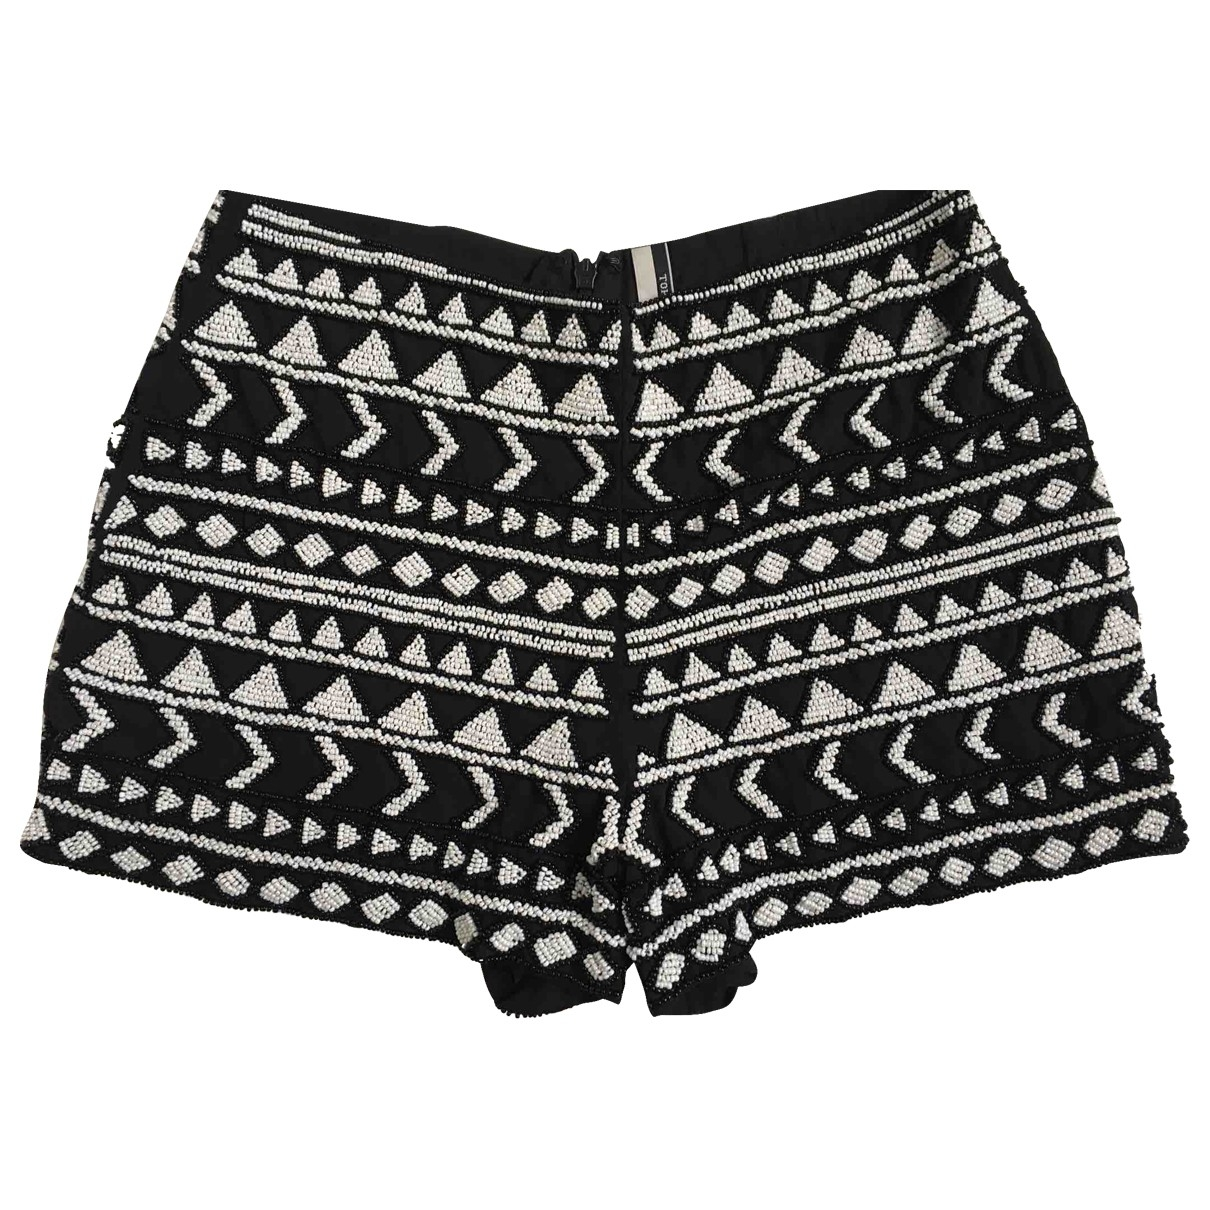 Tophop Boutique \N Shorts in  Schwarz Polyester